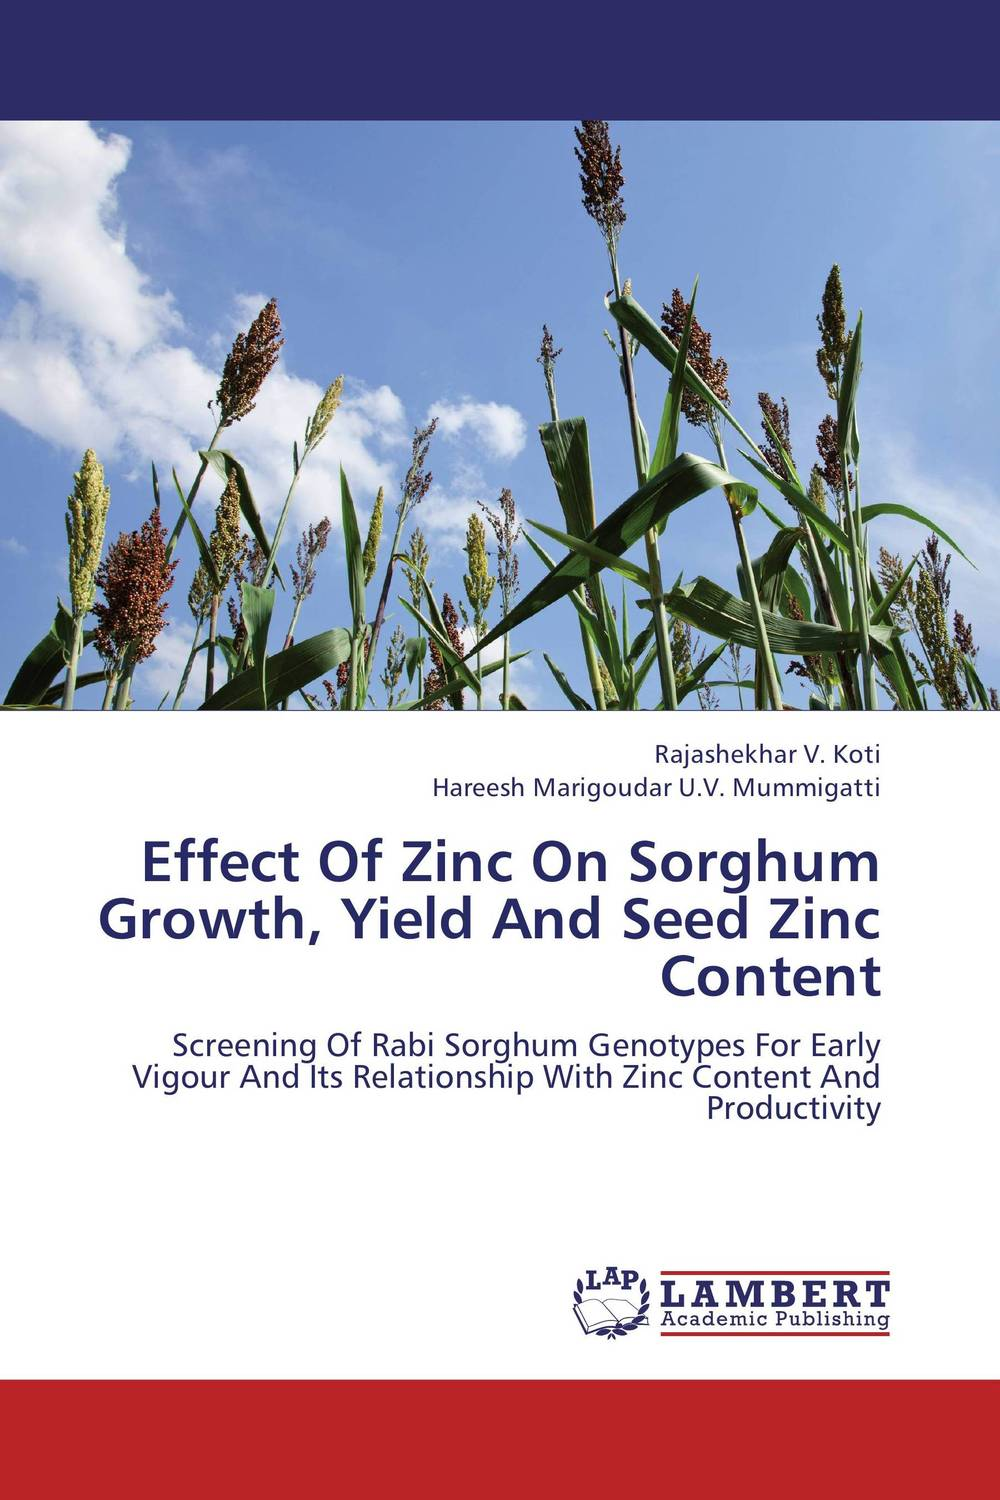 Effect Of Zinc On Sorghum Growth, Yield And Seed Zinc Content cleto namoobe and rajender kumar nanwal growth yield and quality of sorghum as influenced by nitrogen levels